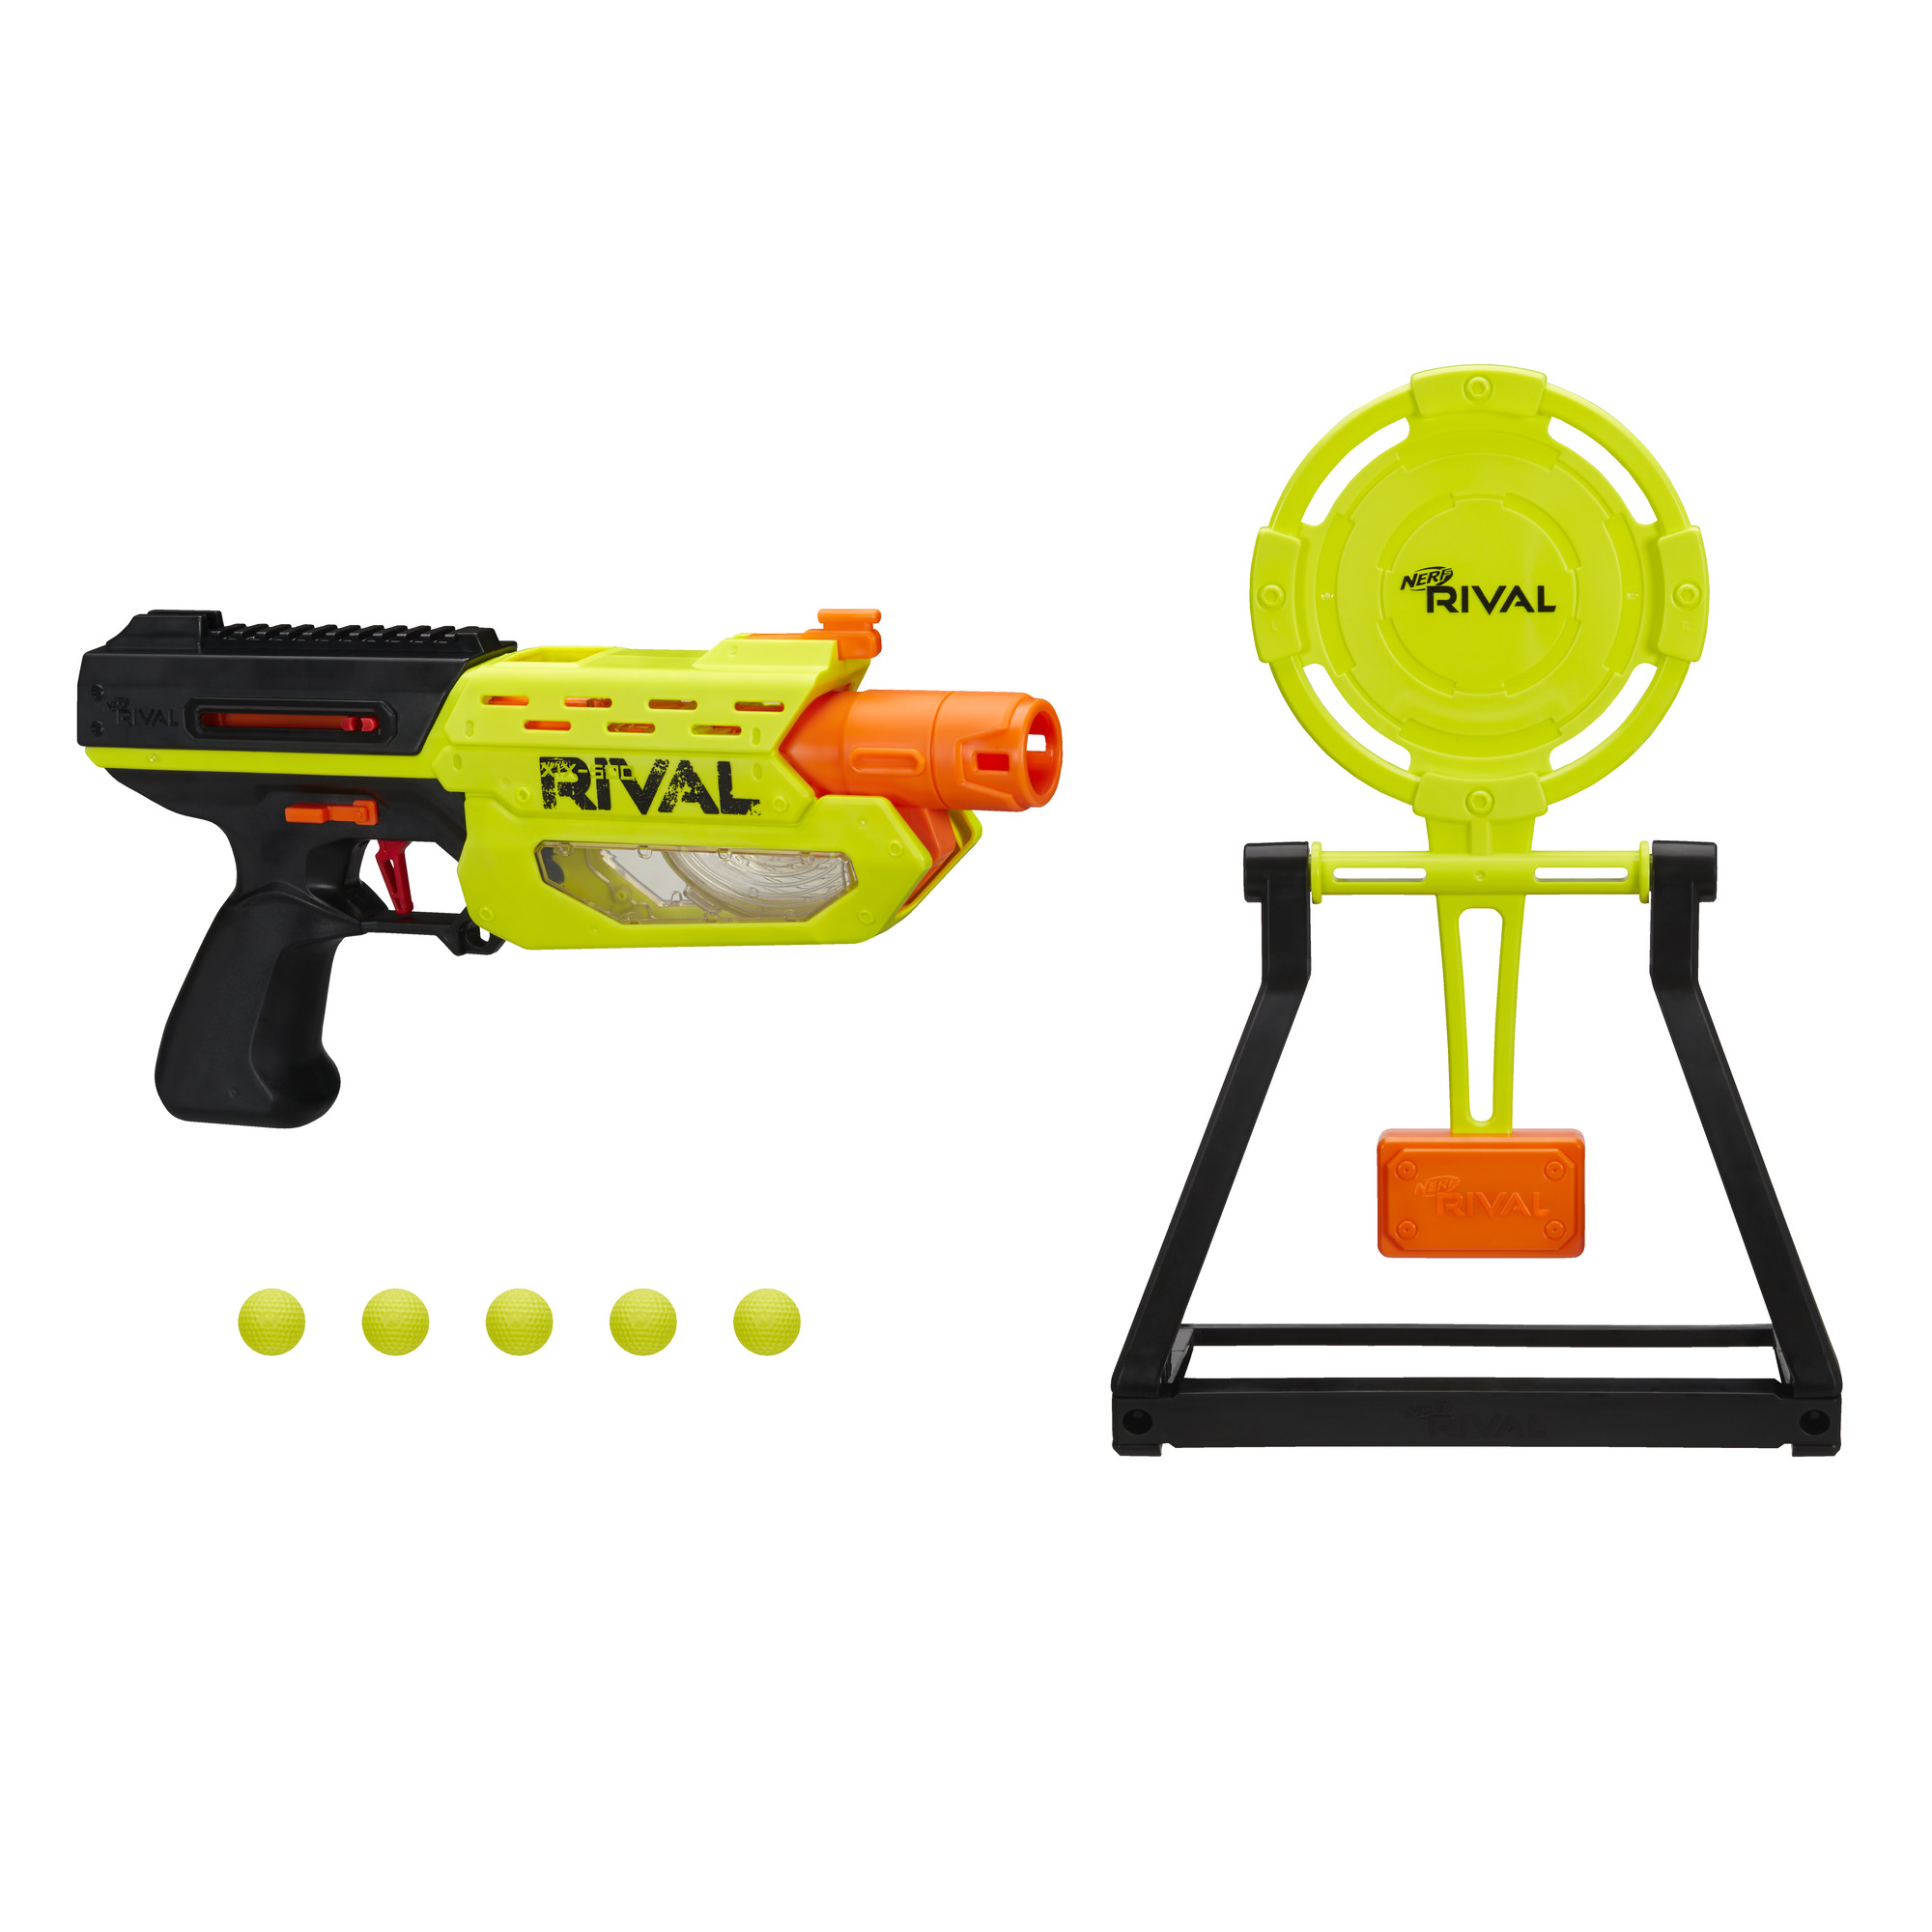 Nerf Rival Mercury XIX-500 Edge Series Blaster with Target and 5 Rounds